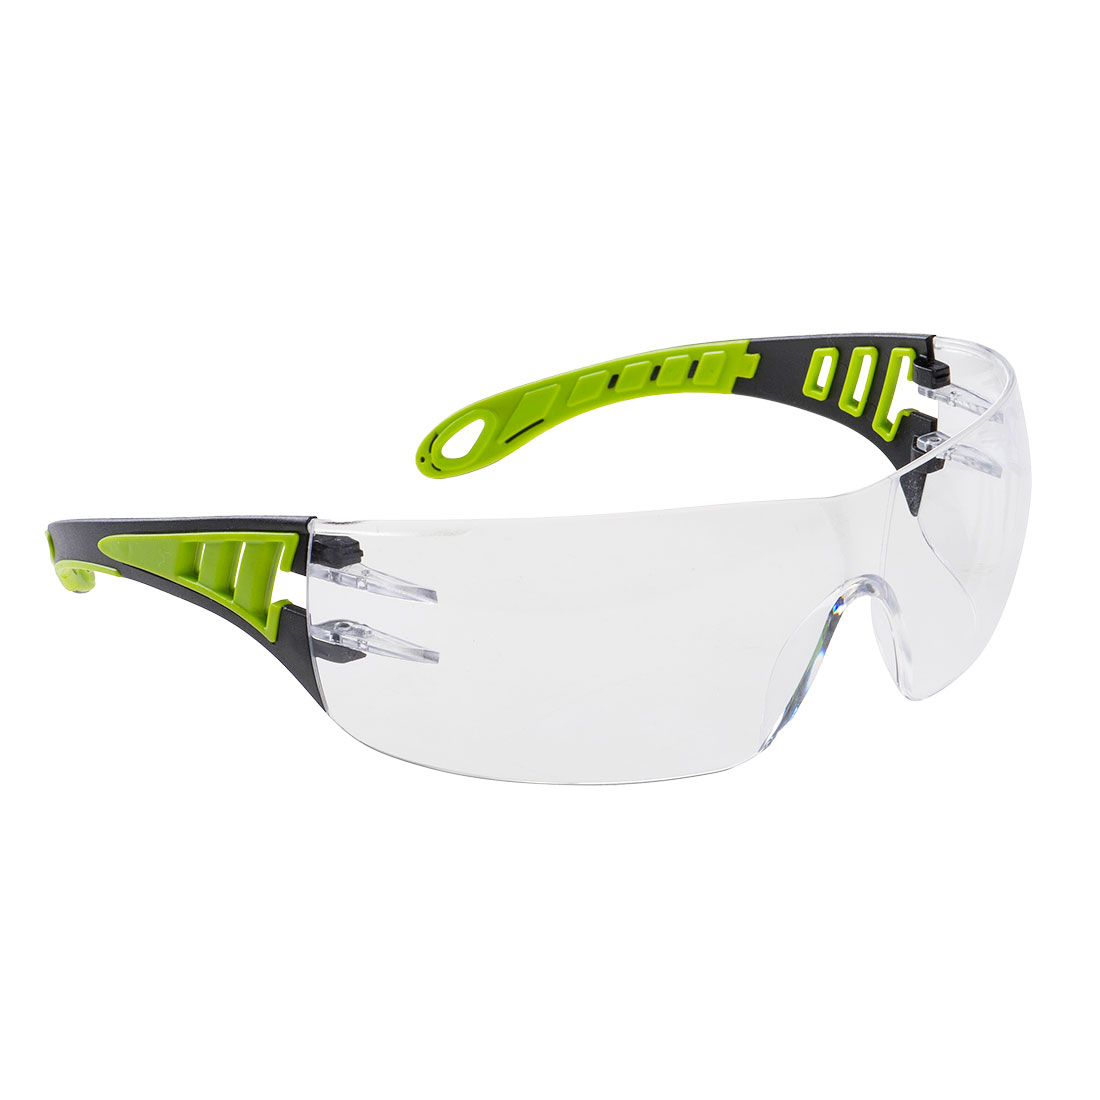 PS12 Clear Tech Safety Glasses